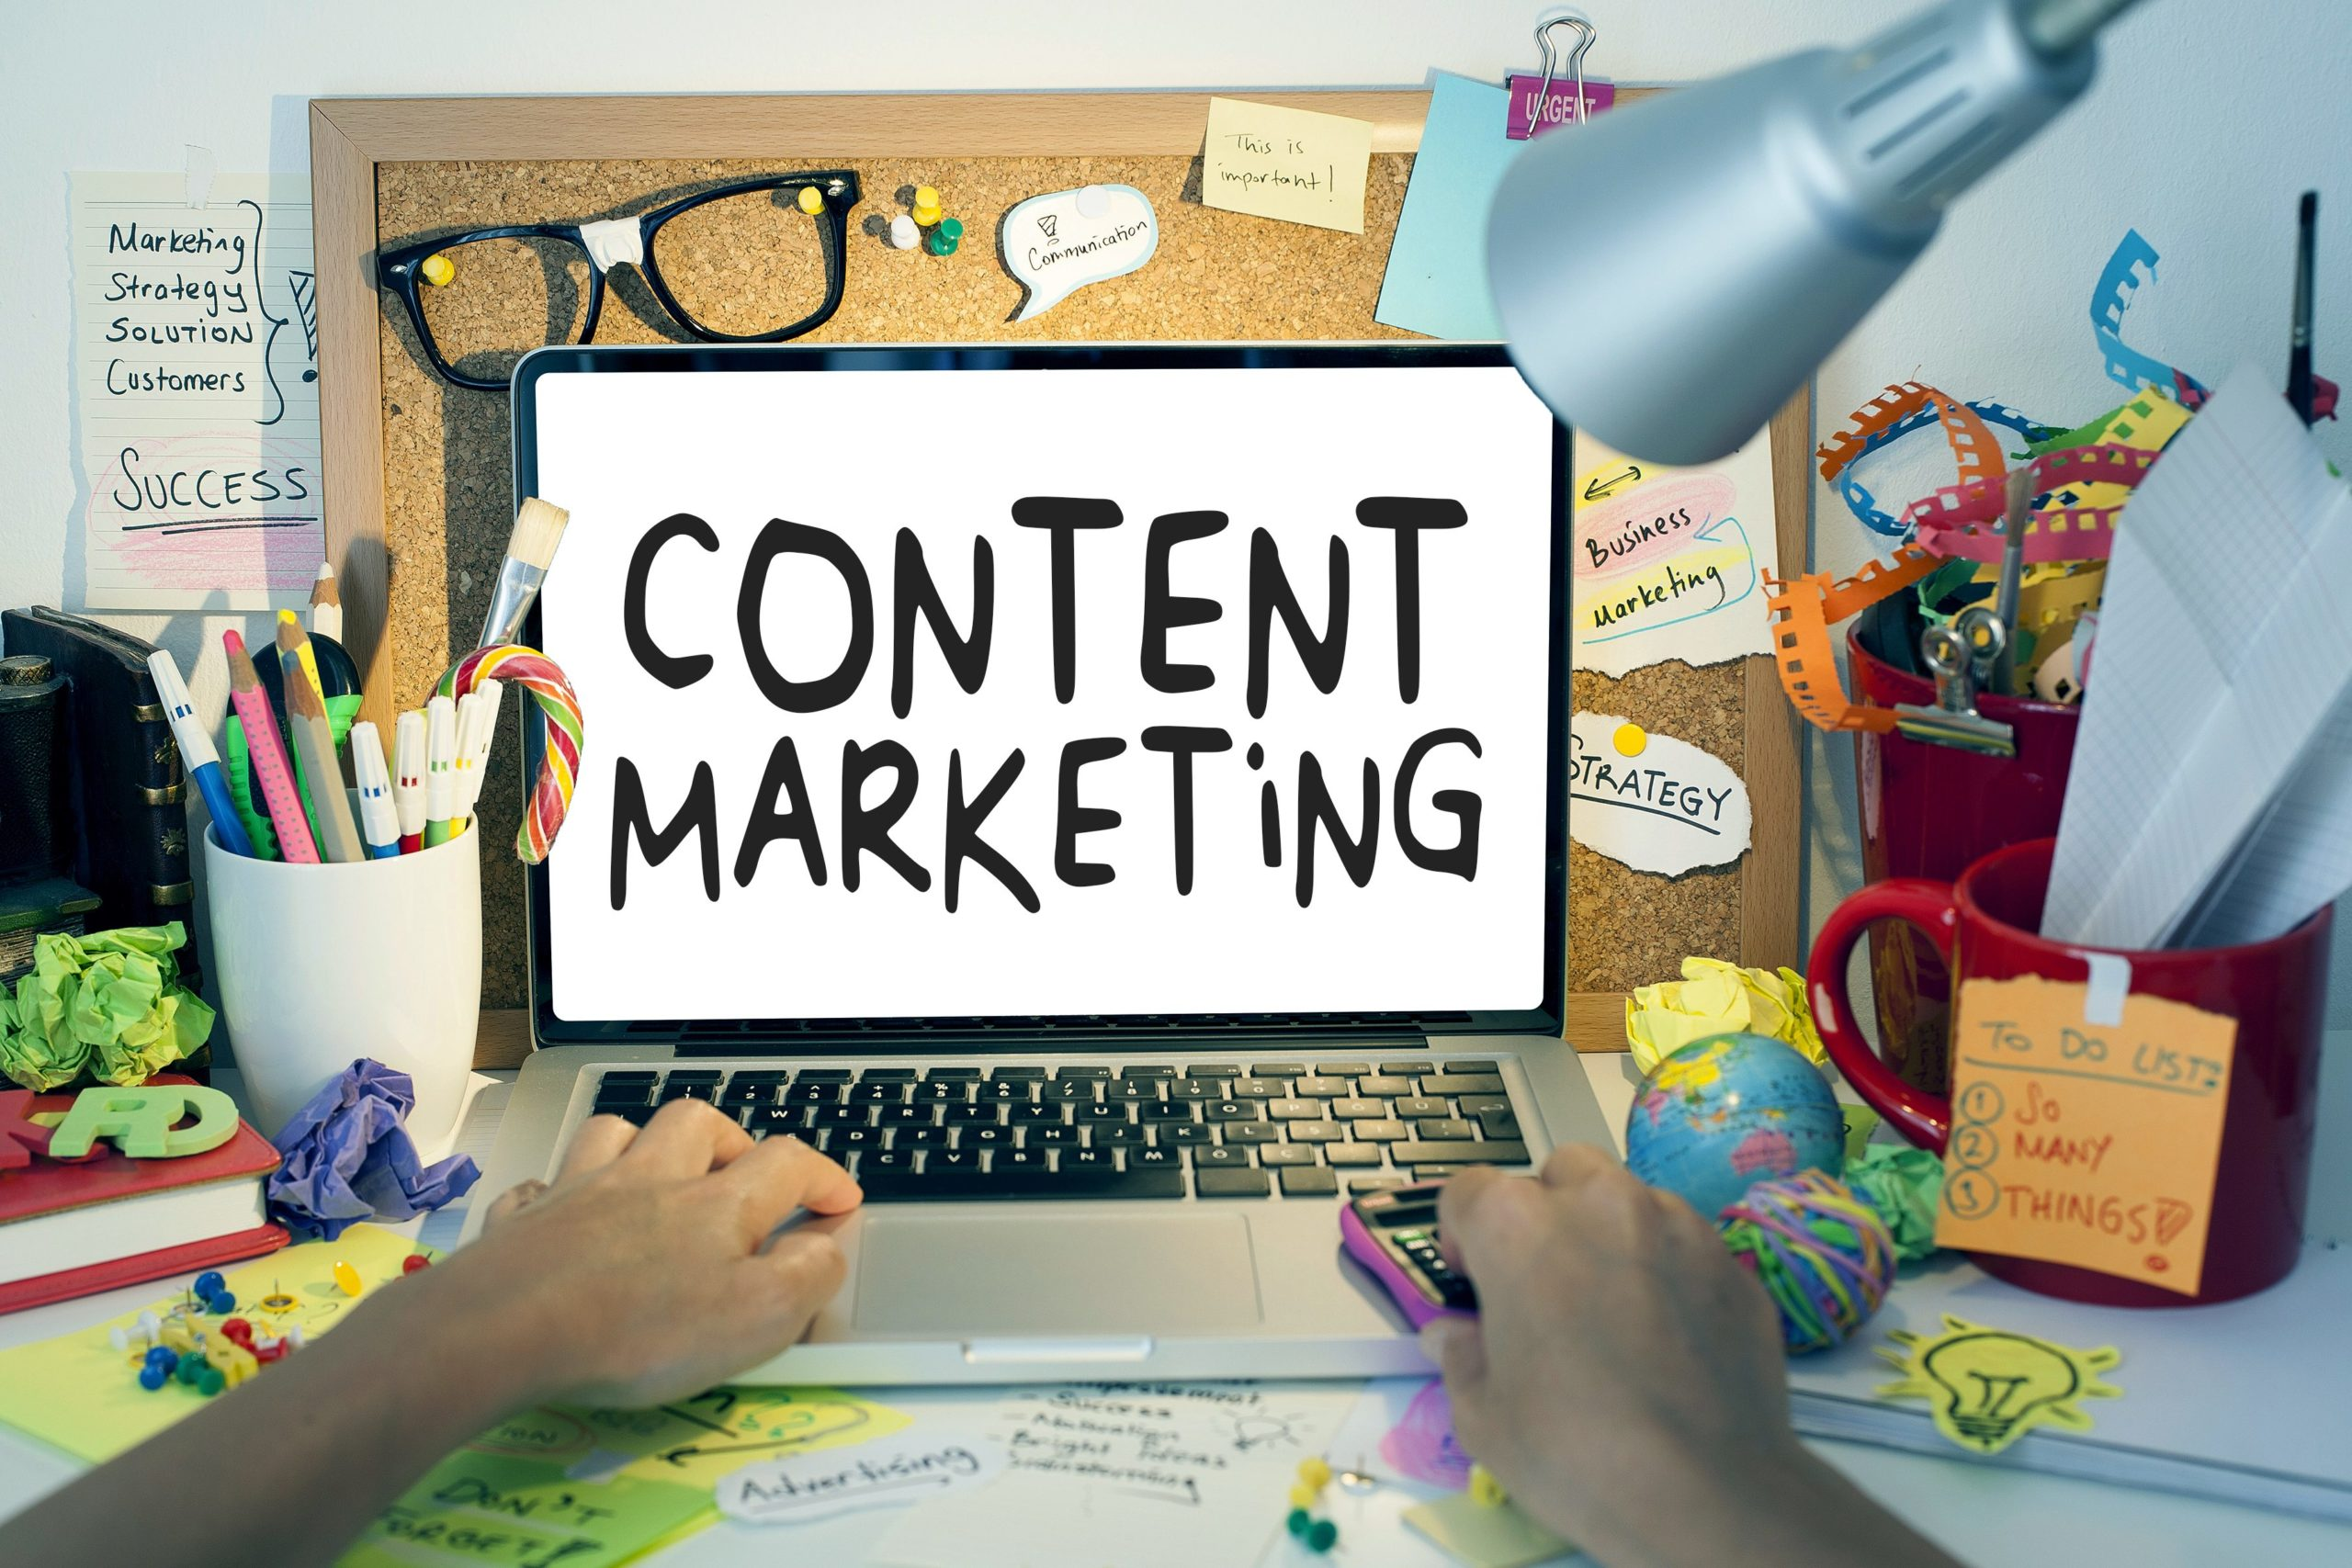 Content Marketing Tools To Make Your Business Grow